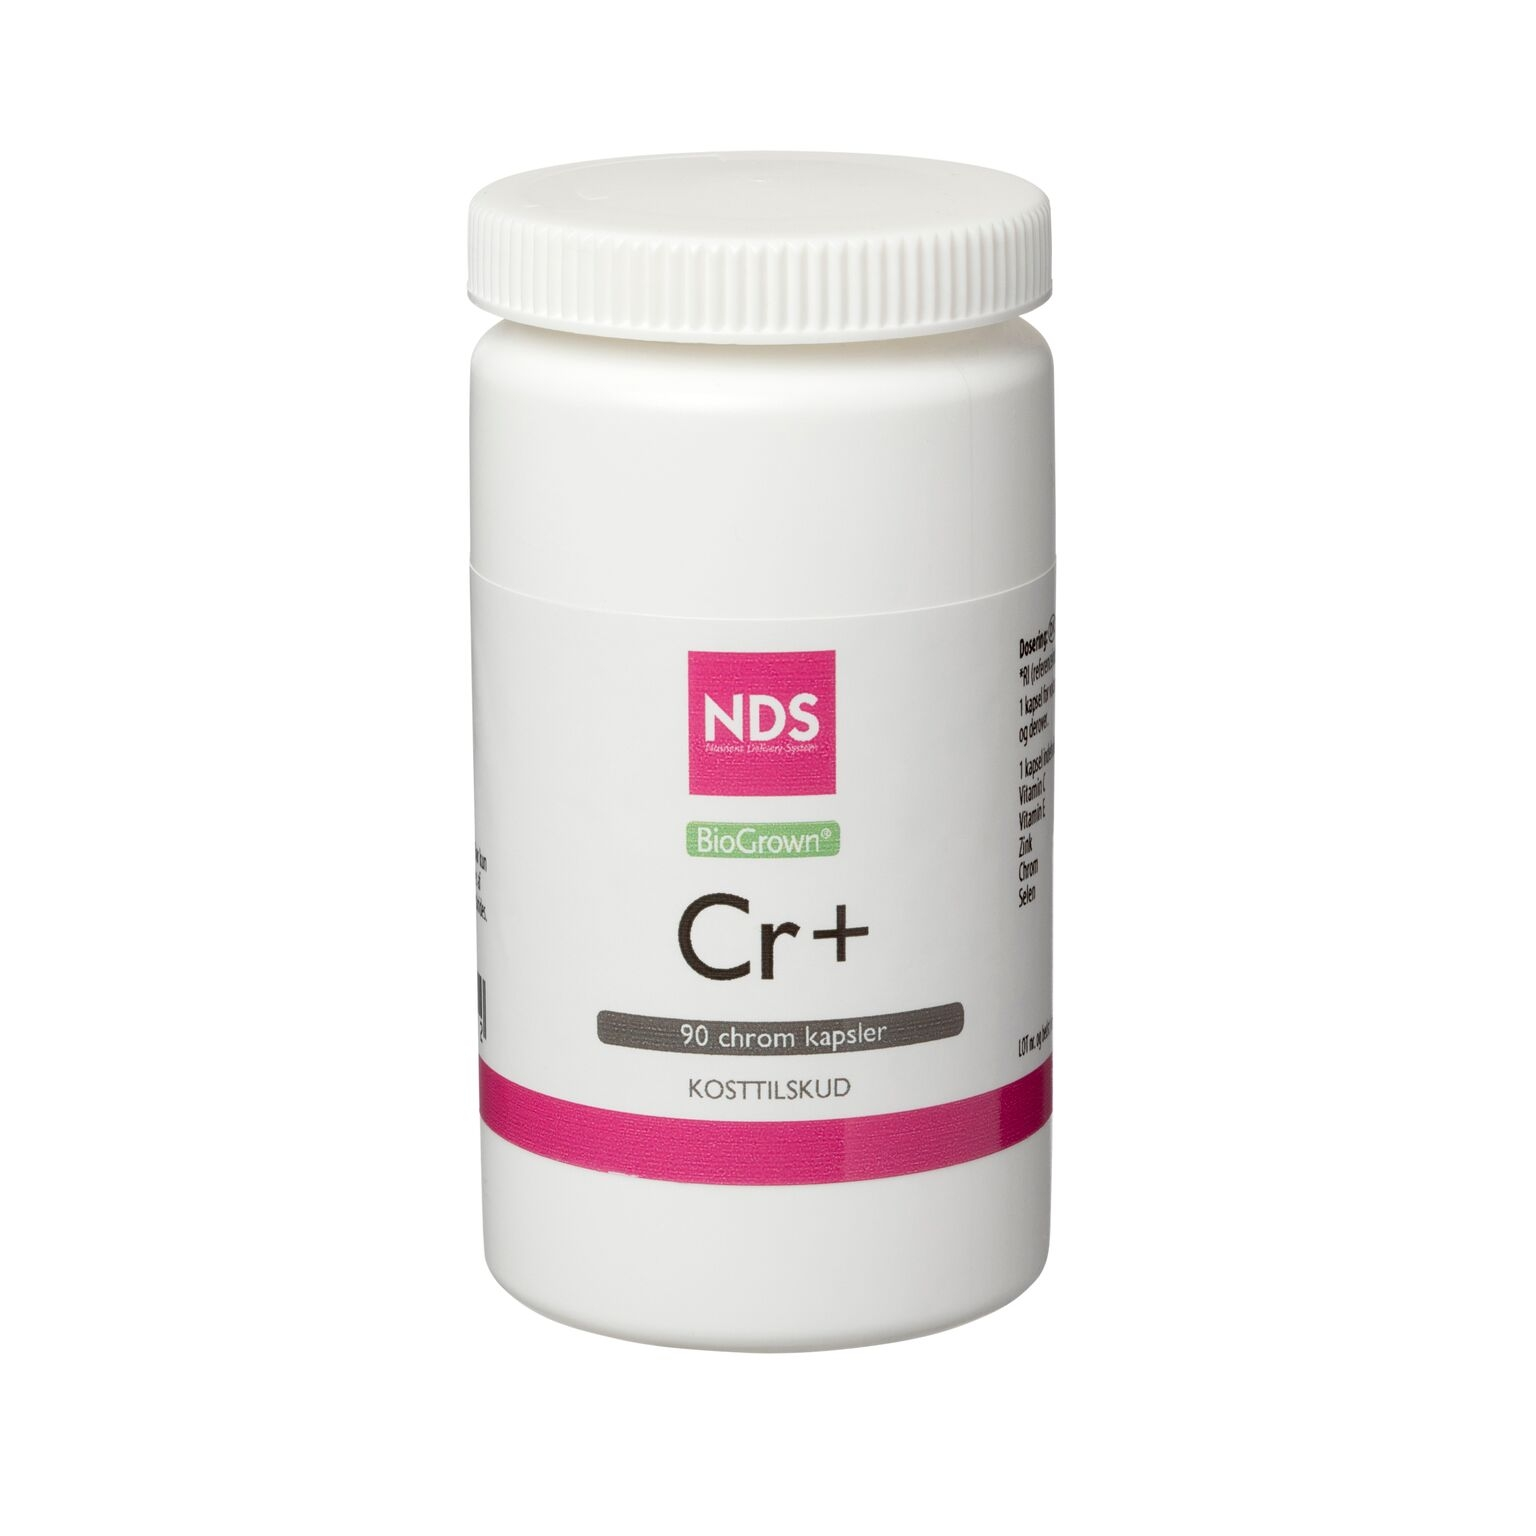 Image of NDS Cr+ Chrom tablet 60 mcg - 90 stk.